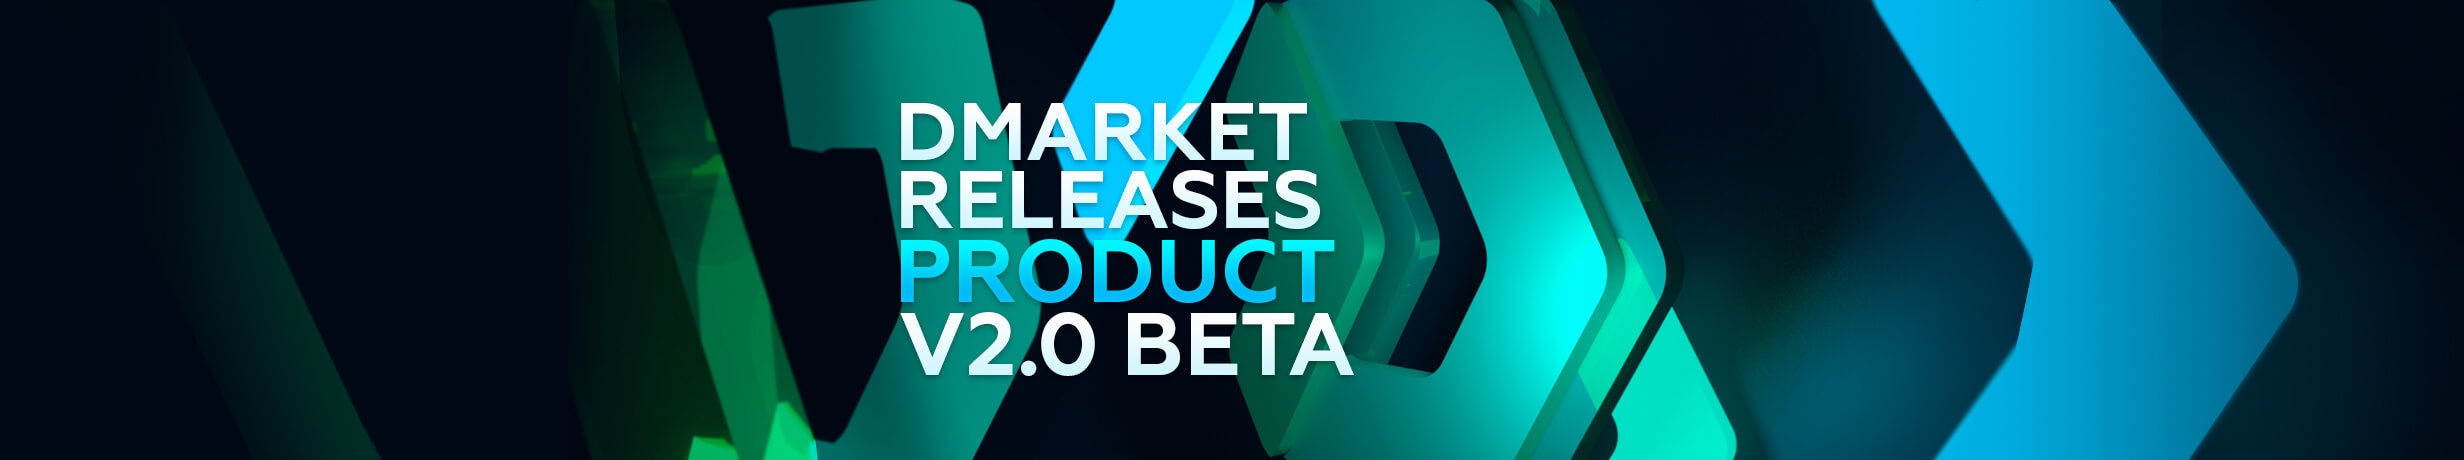 DMarket Releases Product Version 2.0 Beta